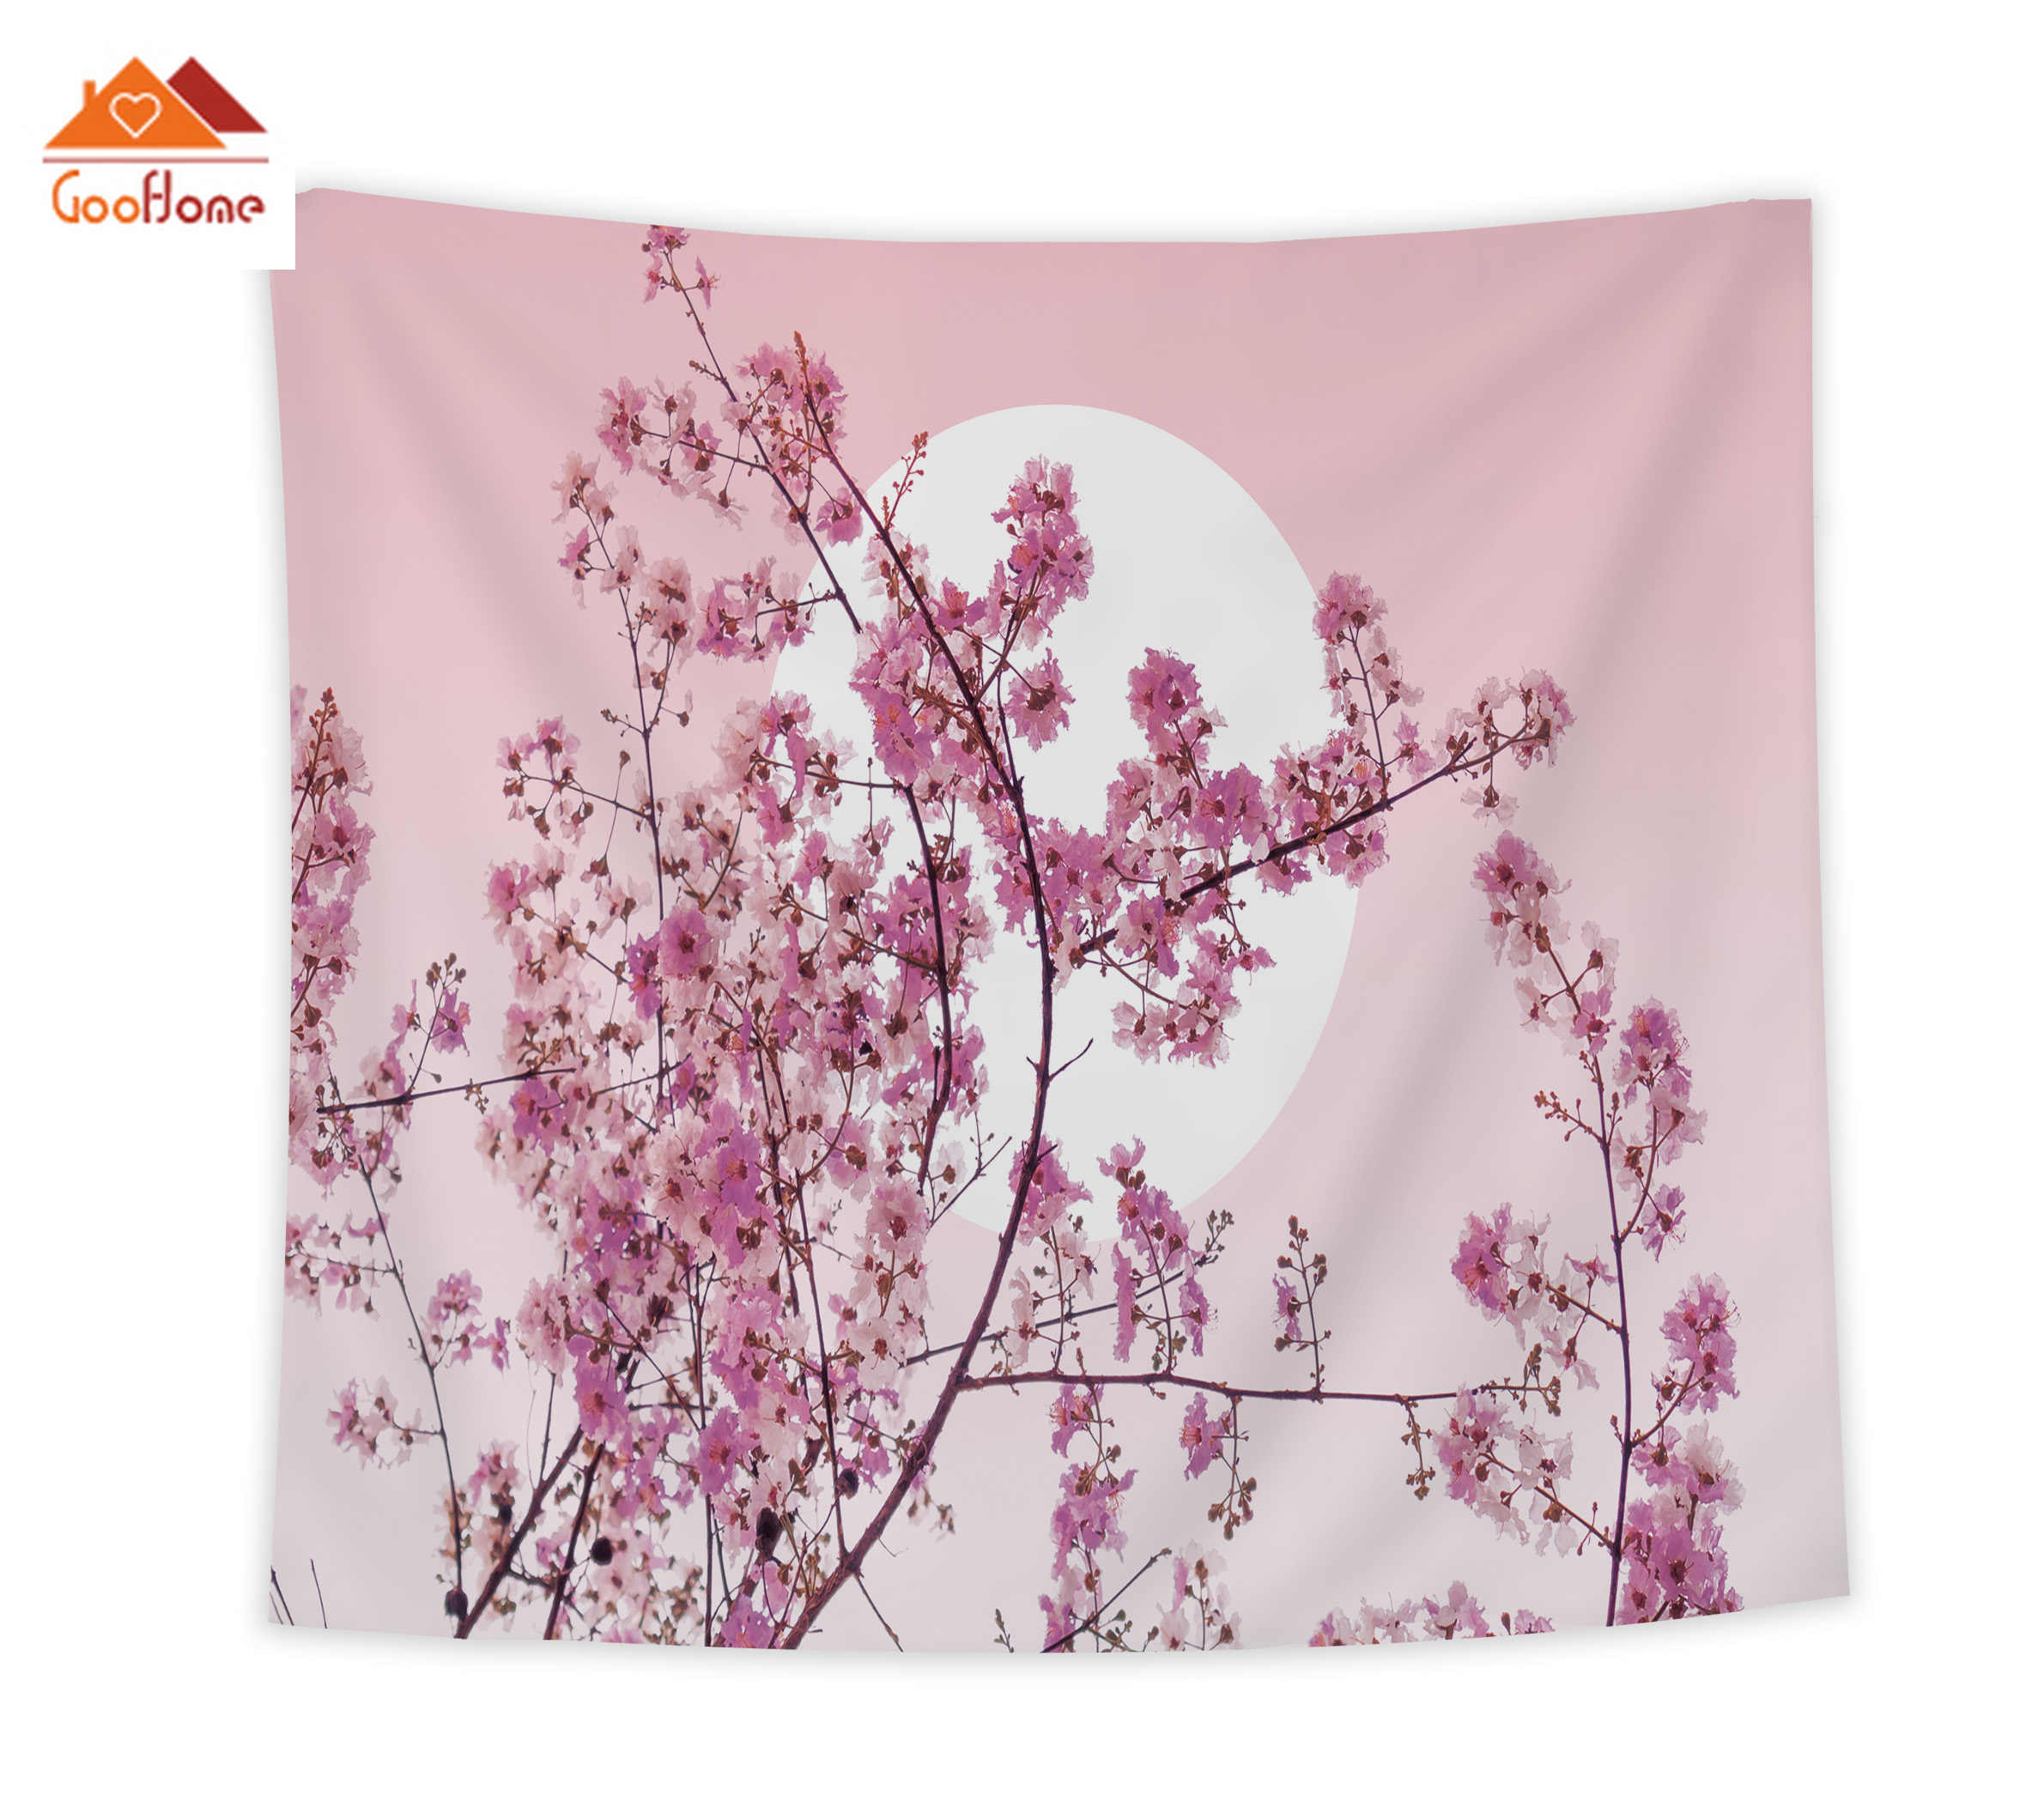 Goohome Japanese Cherry Blossoms Pink Tapestries Wall Decor Wall Decor Bedspread Tapestry Coverlet Curtain Sheet Towel Wrinkle